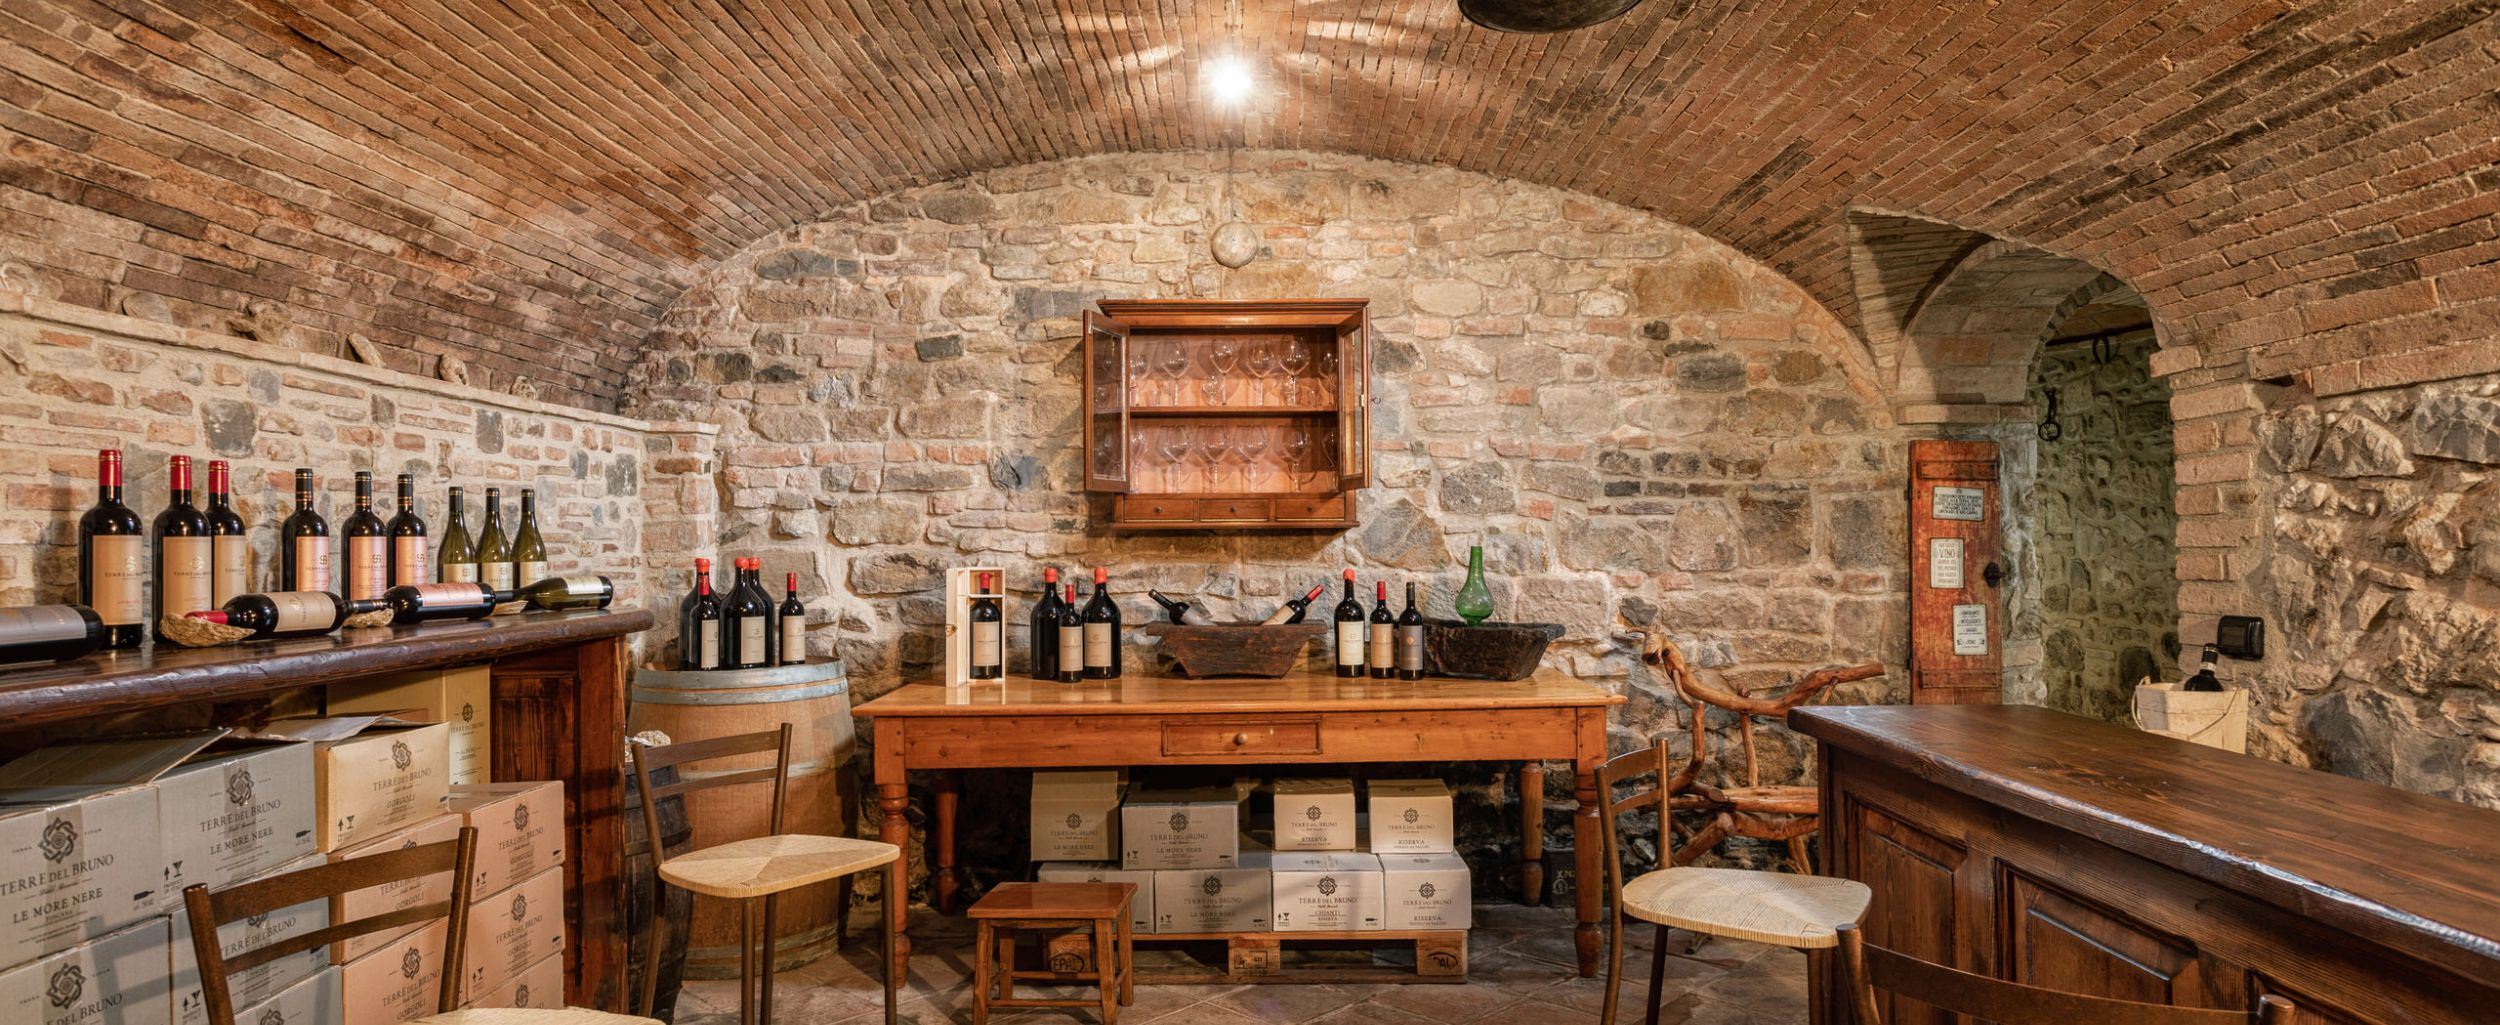 Terre del Bruno Tours and tastings